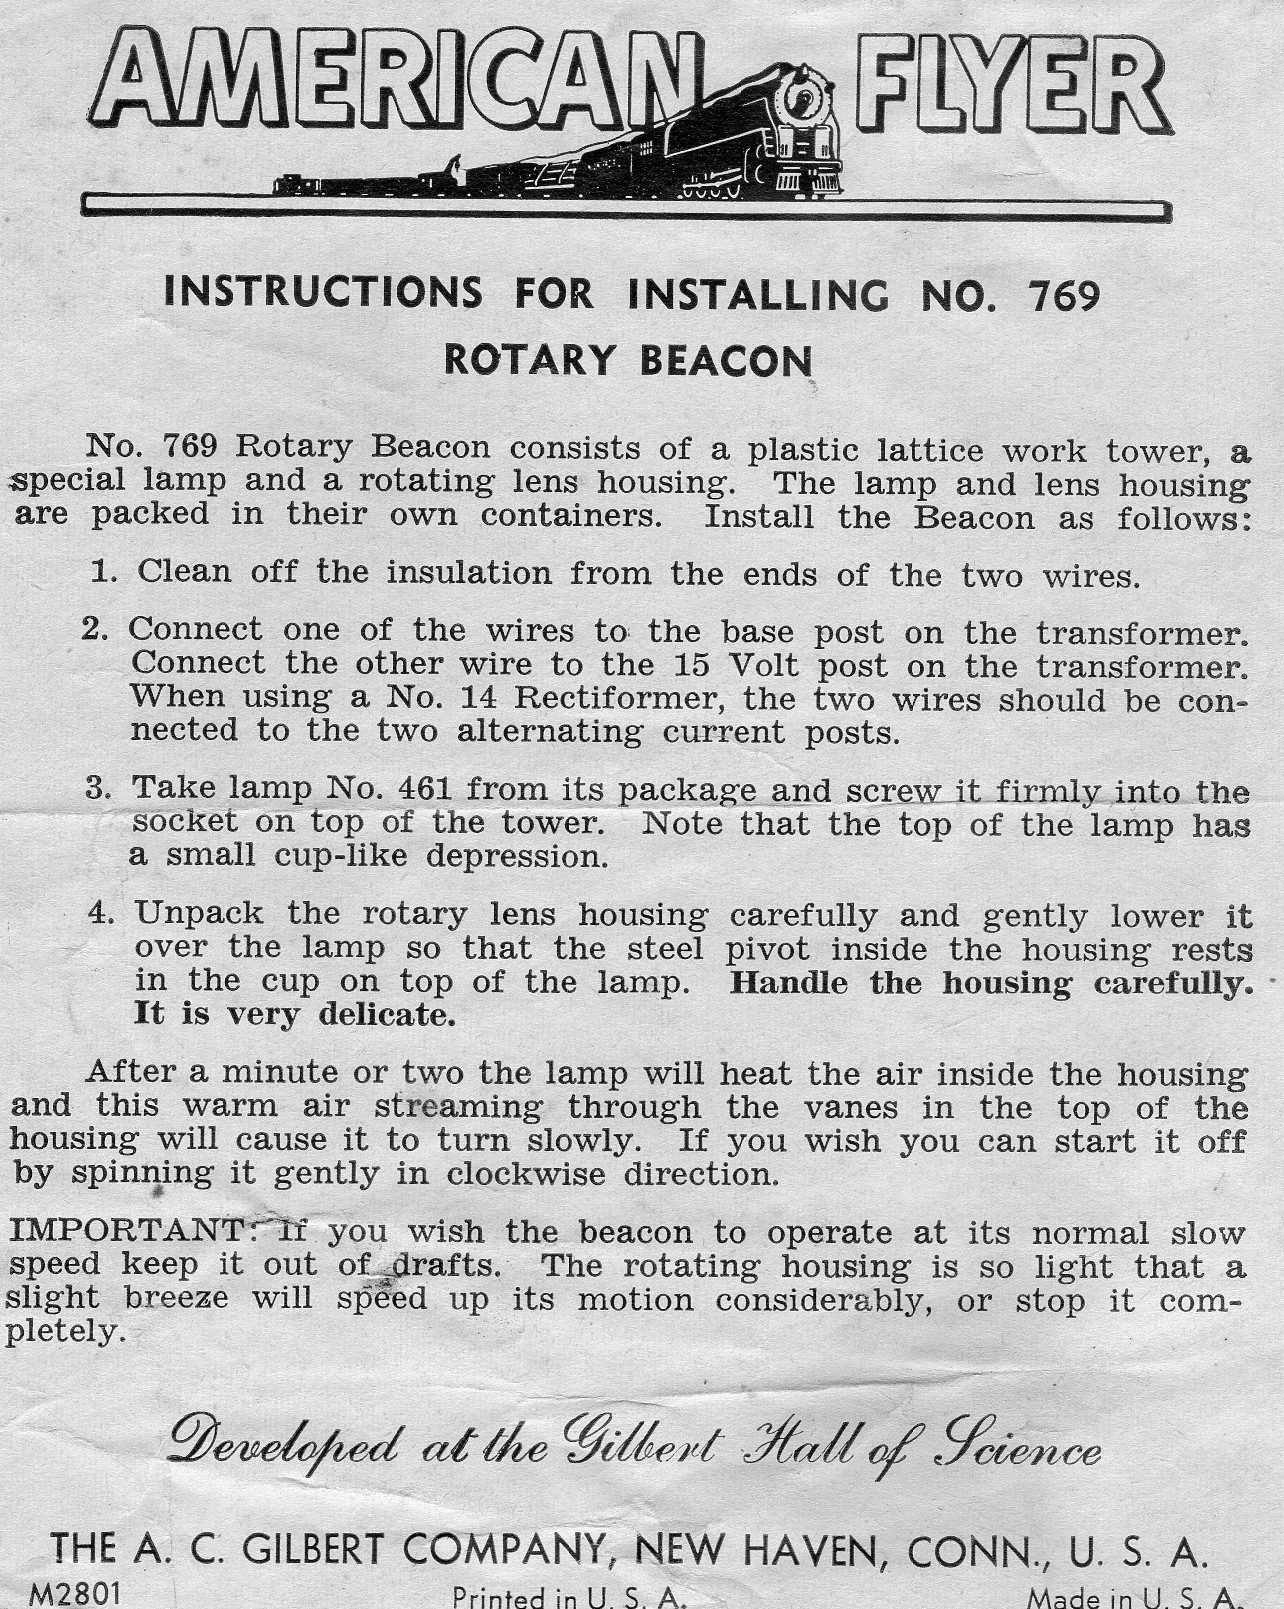 Instructions for Installing No. 769 Rotary Beacon